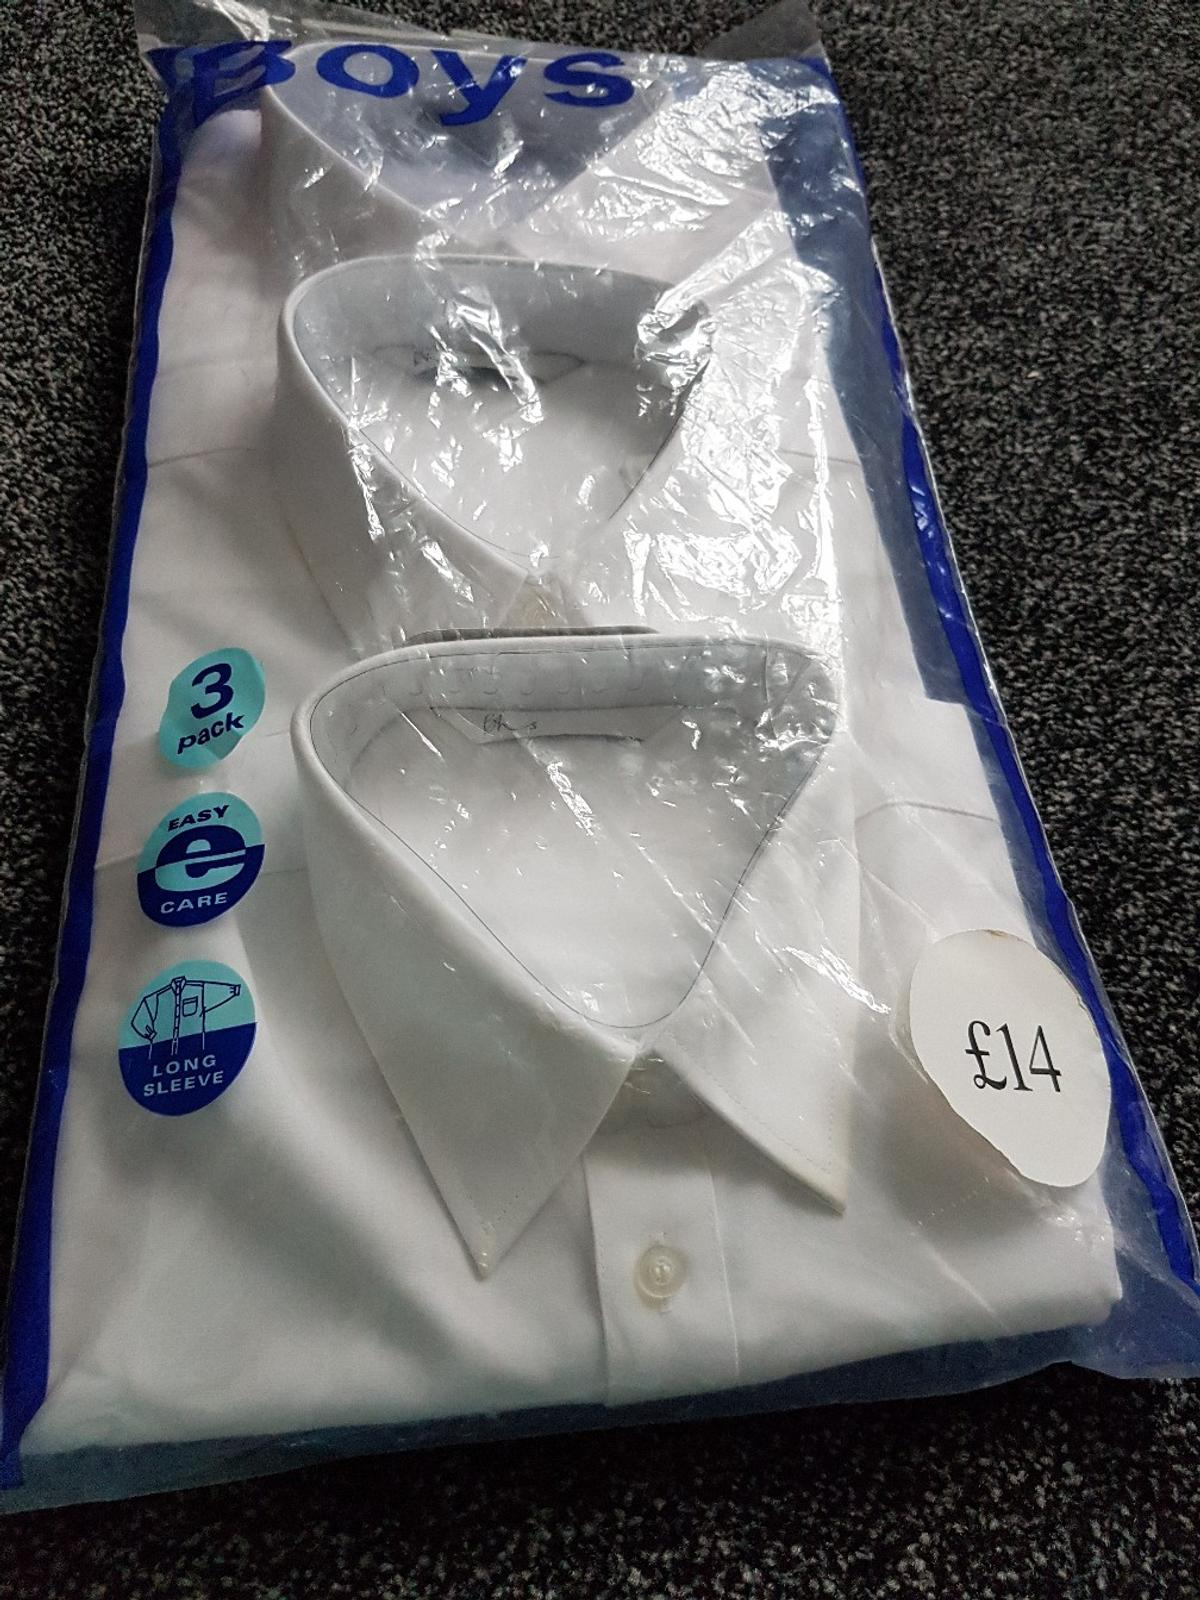 brand new Bhs shcool shirts Pack of 3 15 inch collar original price £14 size 9 -10 years